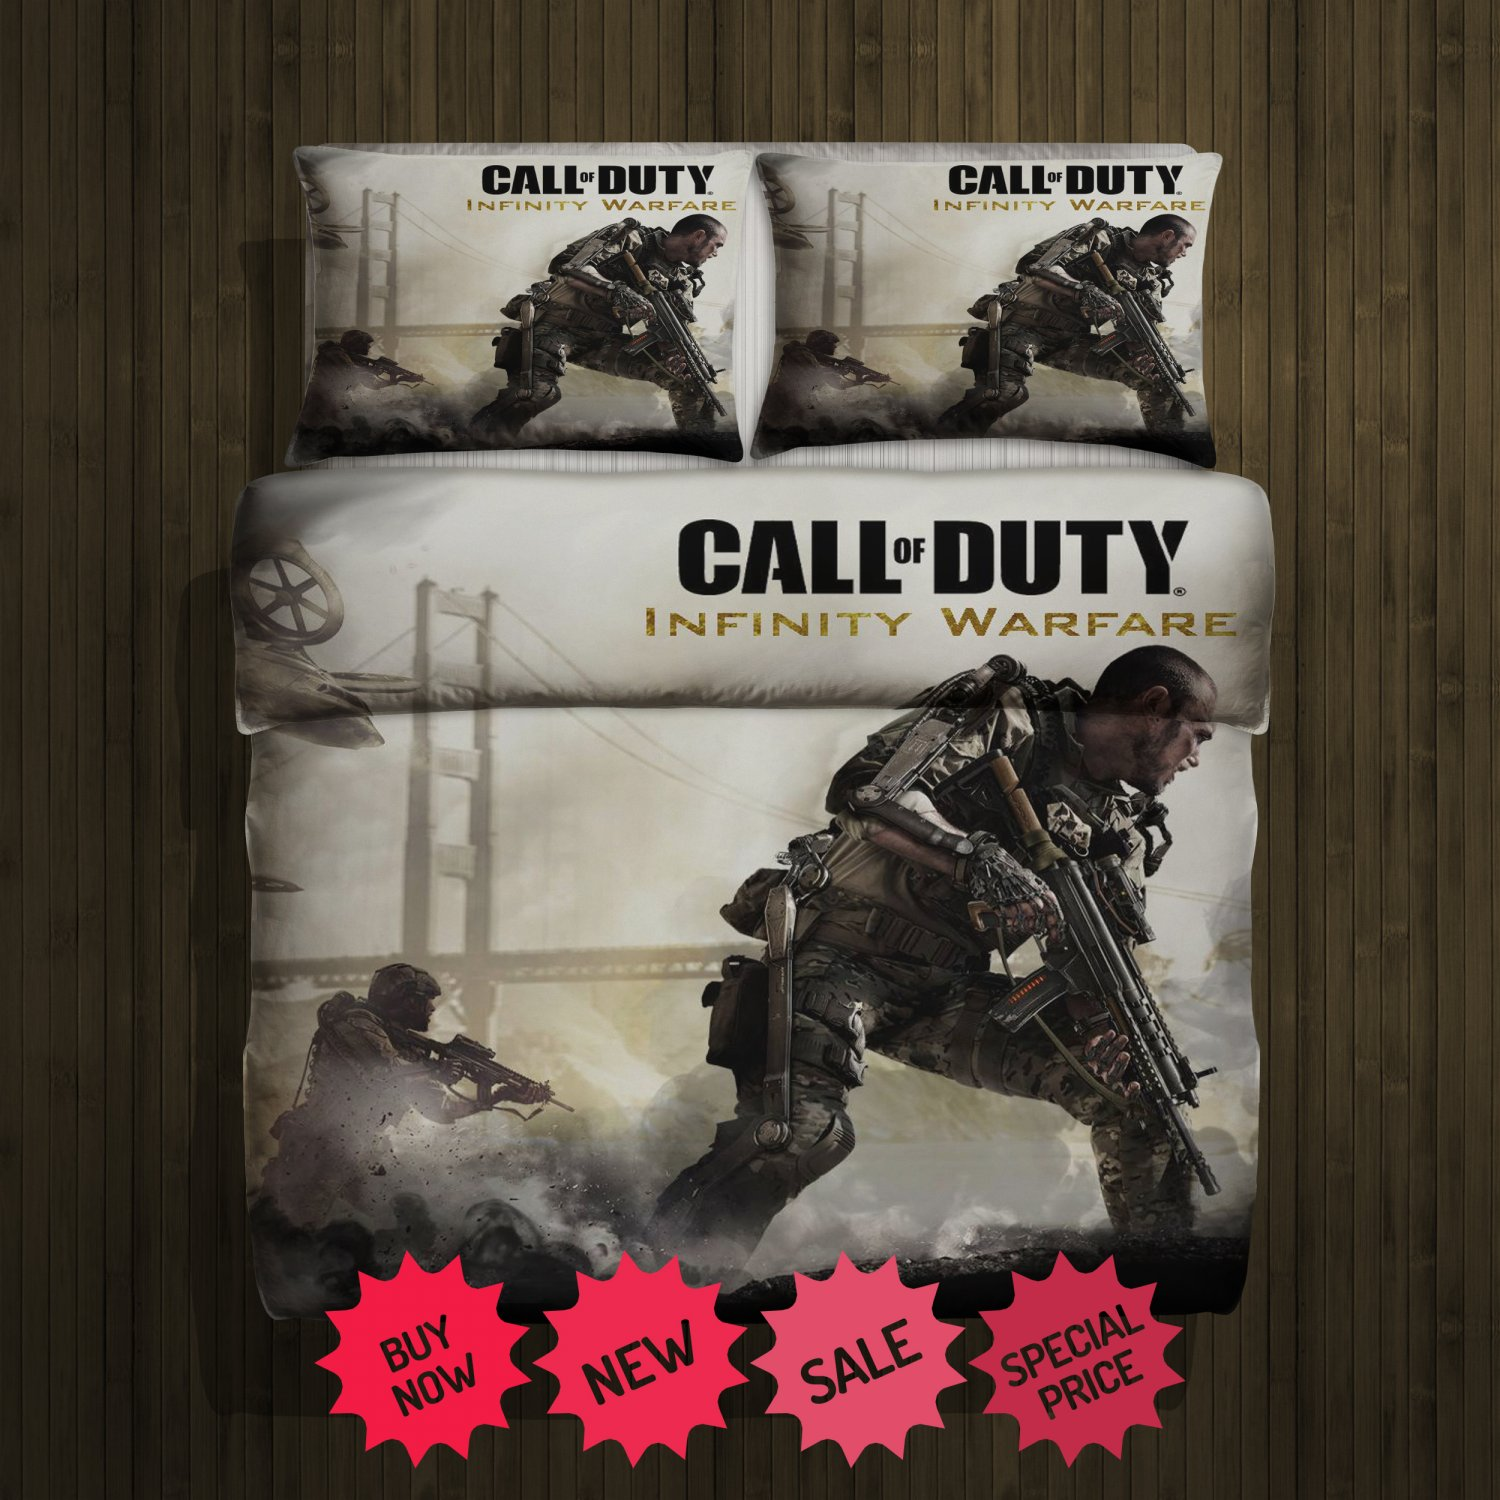 Call Of Duty Infinite Warfare Blanket Large & 2 Pillow Cases #110733211,110738226(2)